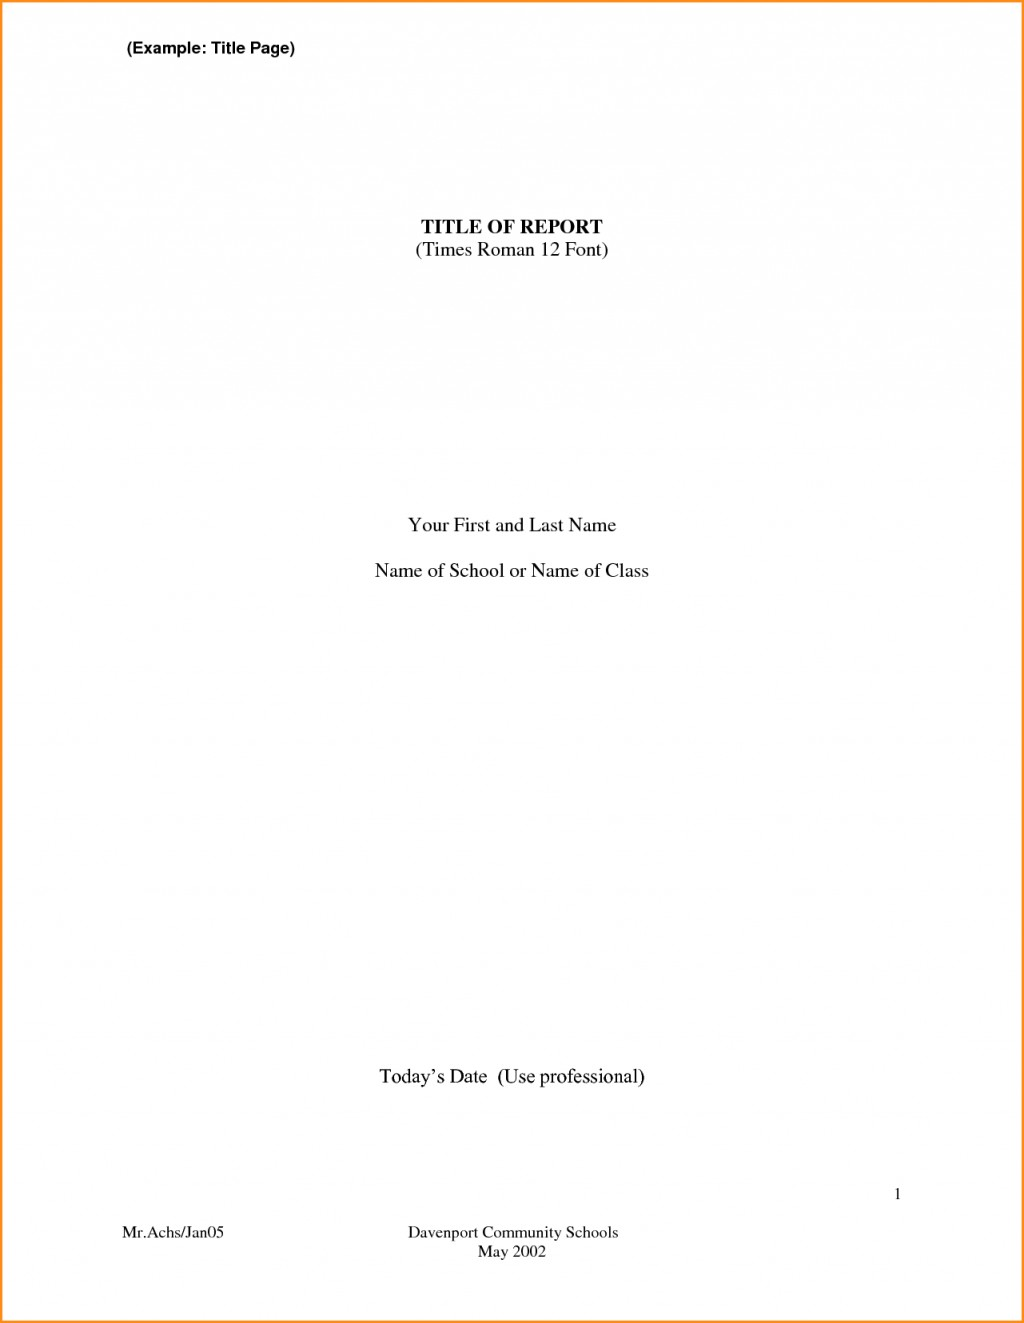 002 Cover Page Template For Research Paper Front Of Format Striking A Title Example Layout Large